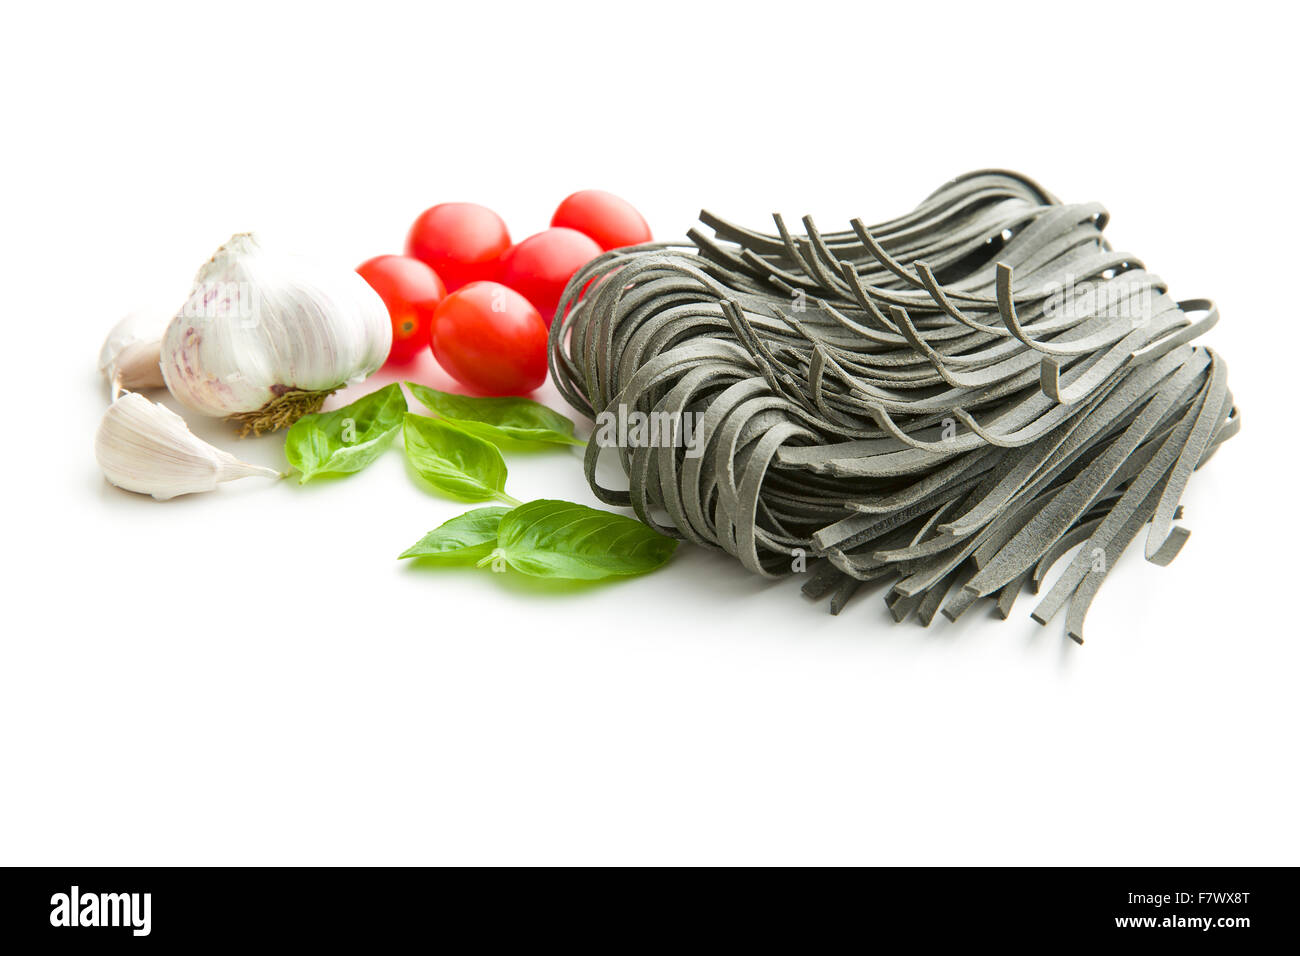 noodles, garlic, tomatoes and basil leaves on white background Stock Photo